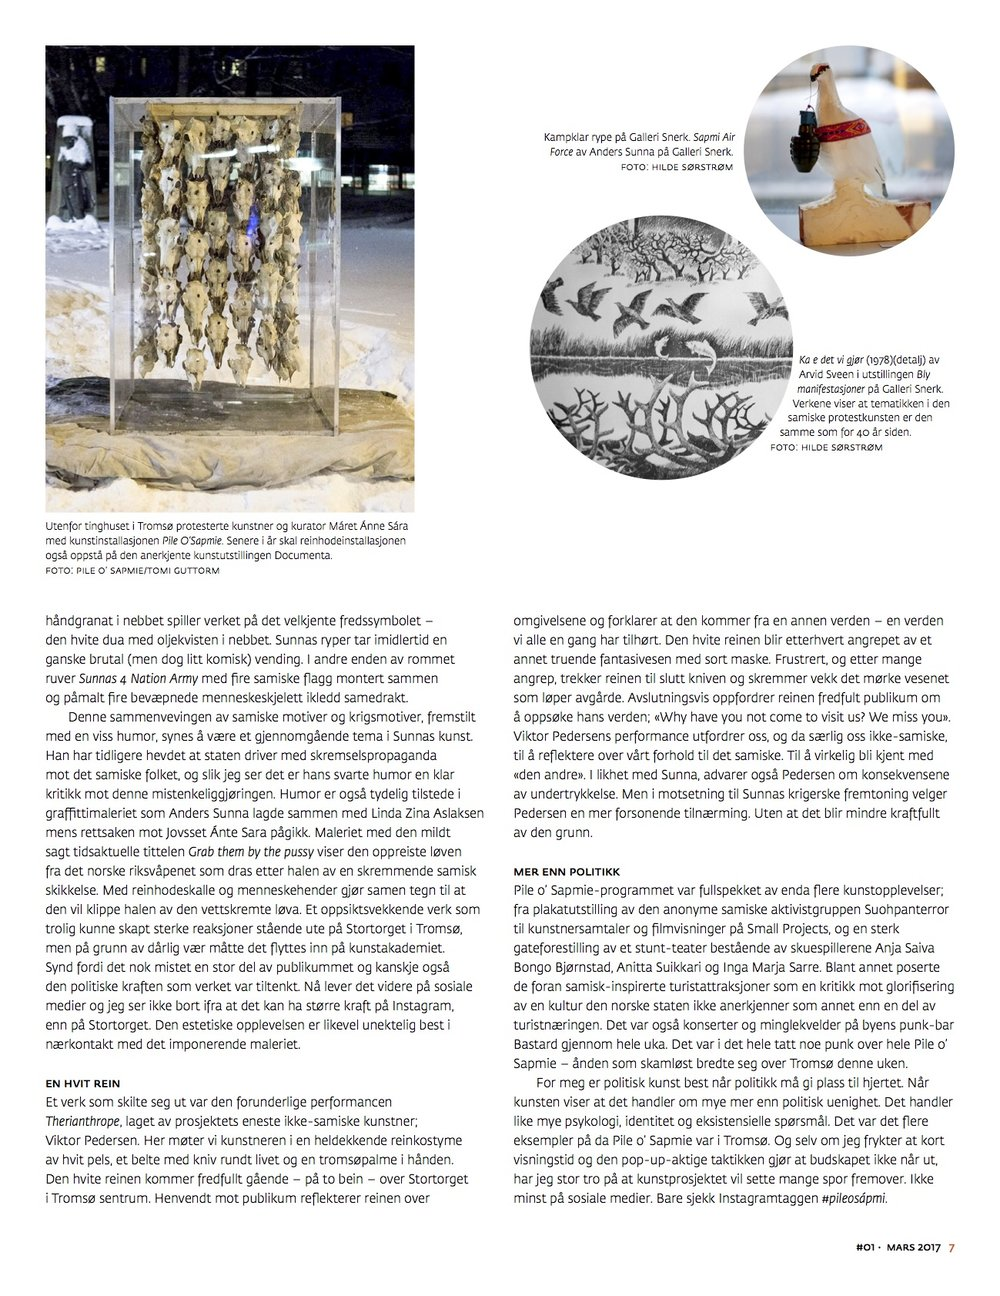 Pages from Se_Kunst_Magasin_01_2017_12-2-kopi2.jpg